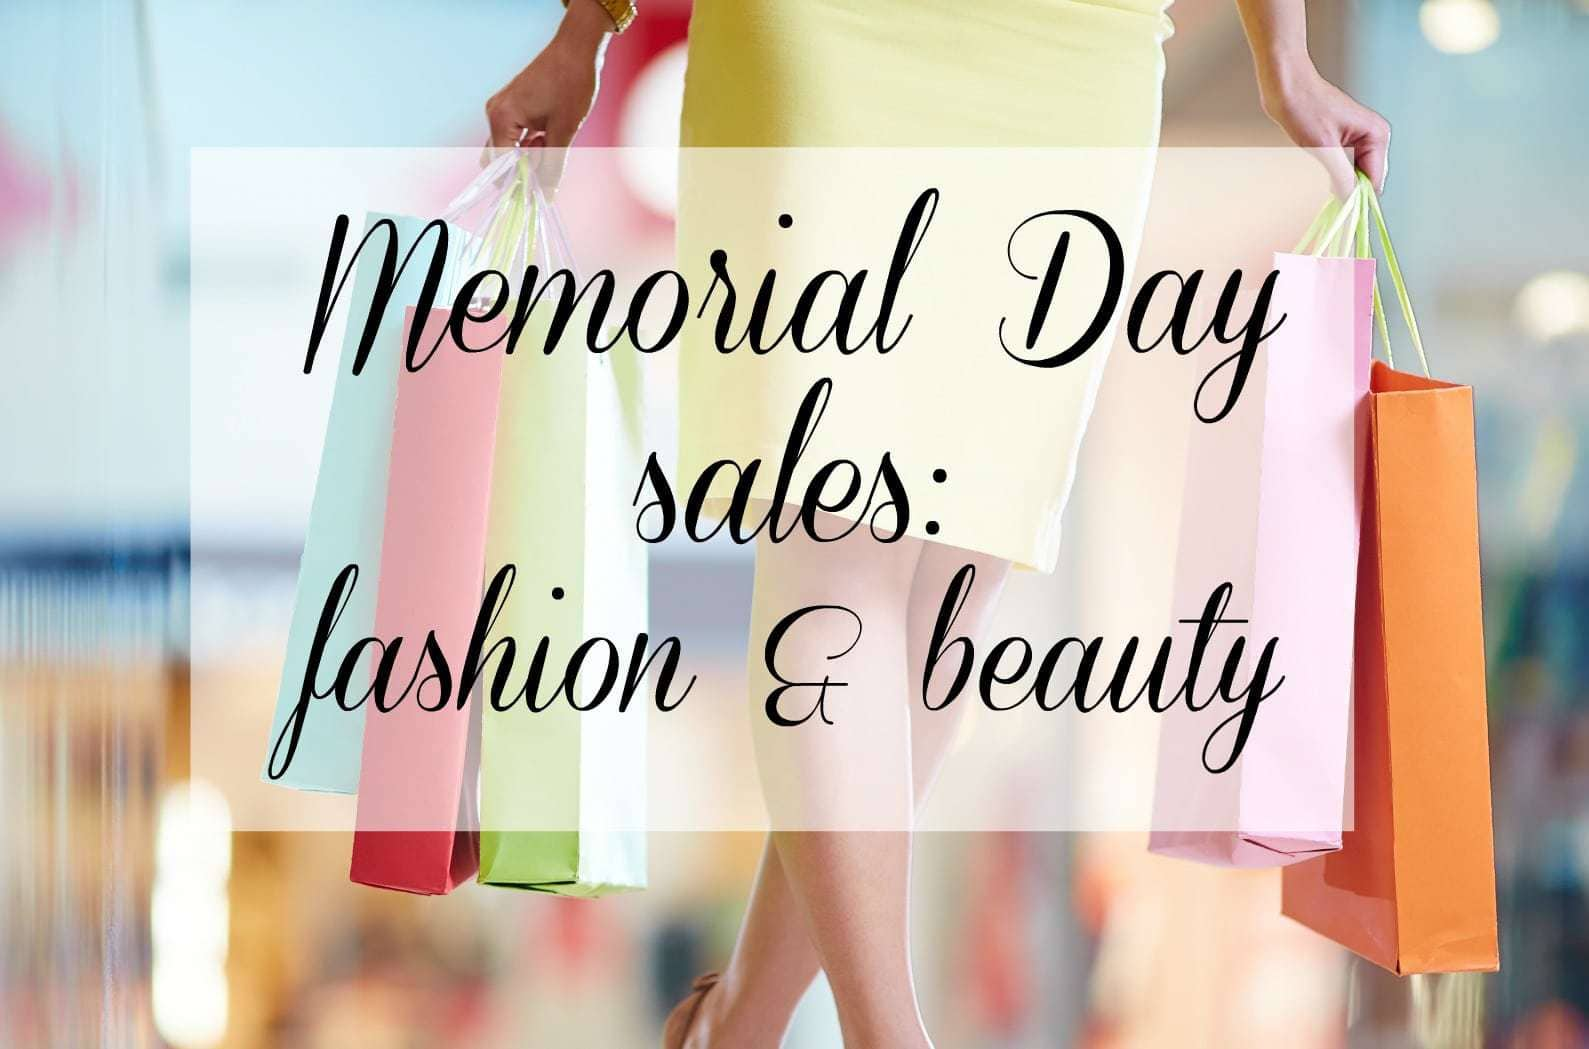 Wardrobe Oxygen - Best Memorial Day Sales of Fashion and Beauty